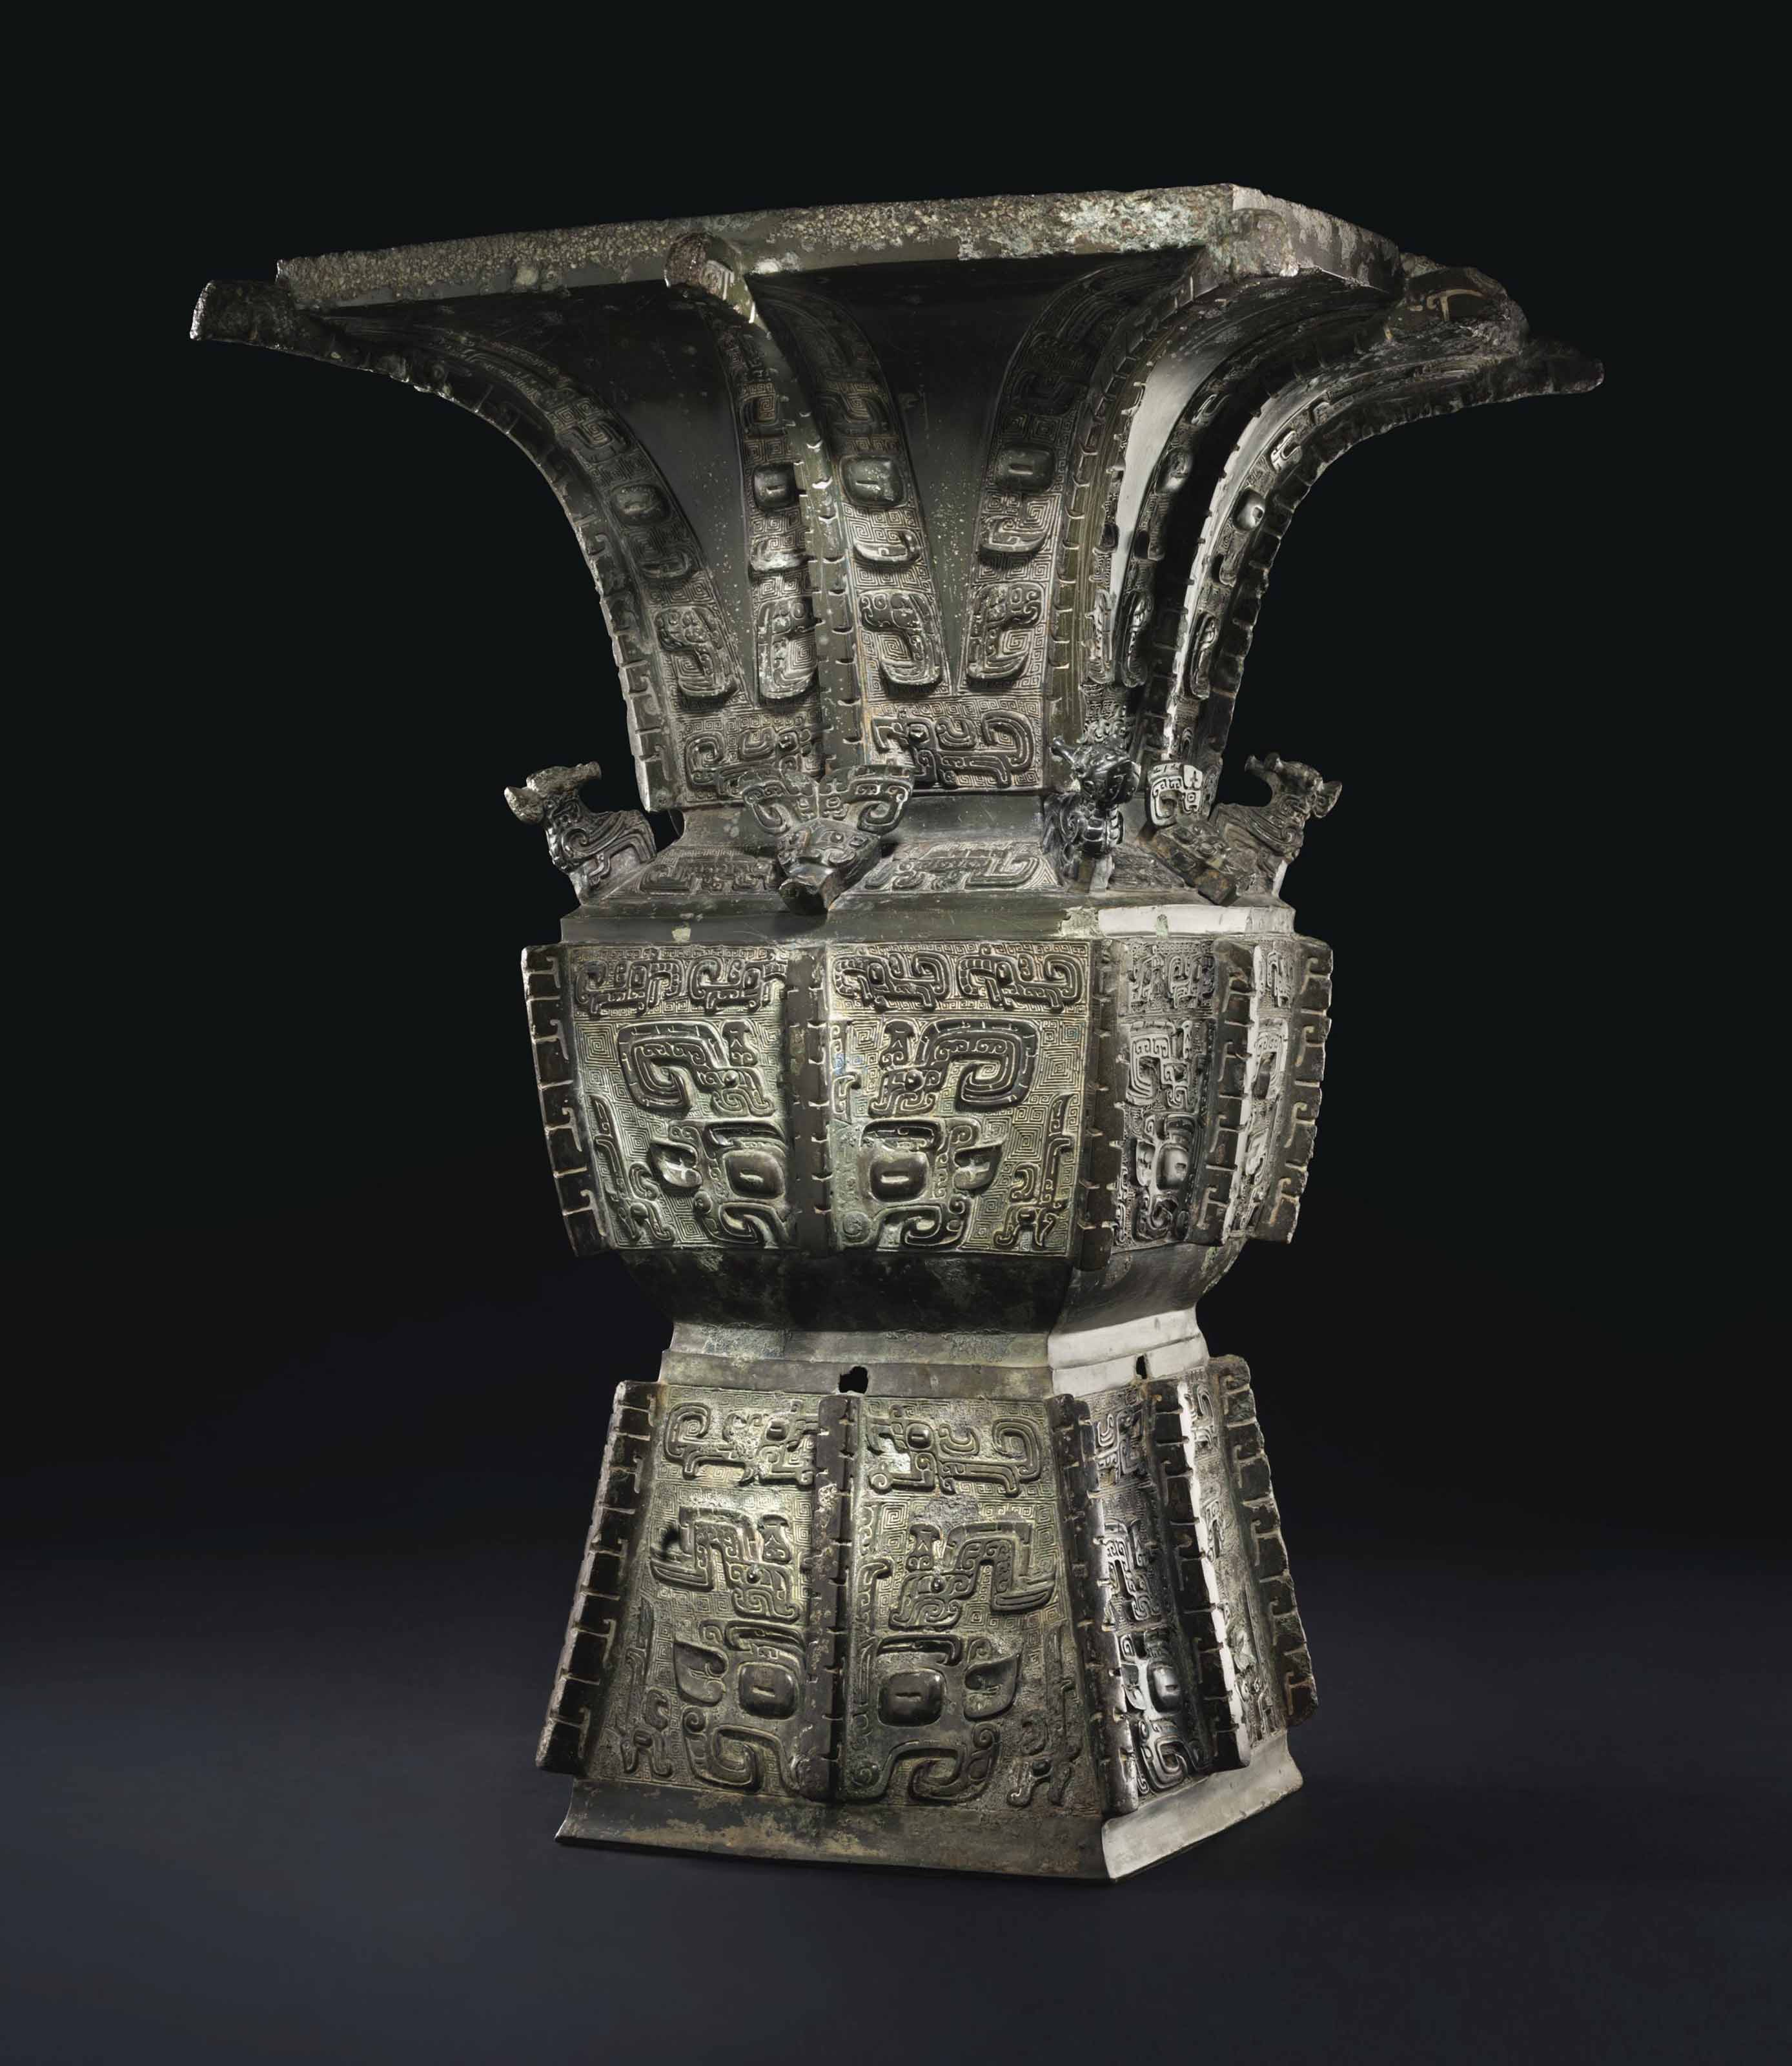 A MAGNIFICENT AND HIGHLY IMPORTANT BRONZE RITUAL WINE VESSEL, FANGZUN